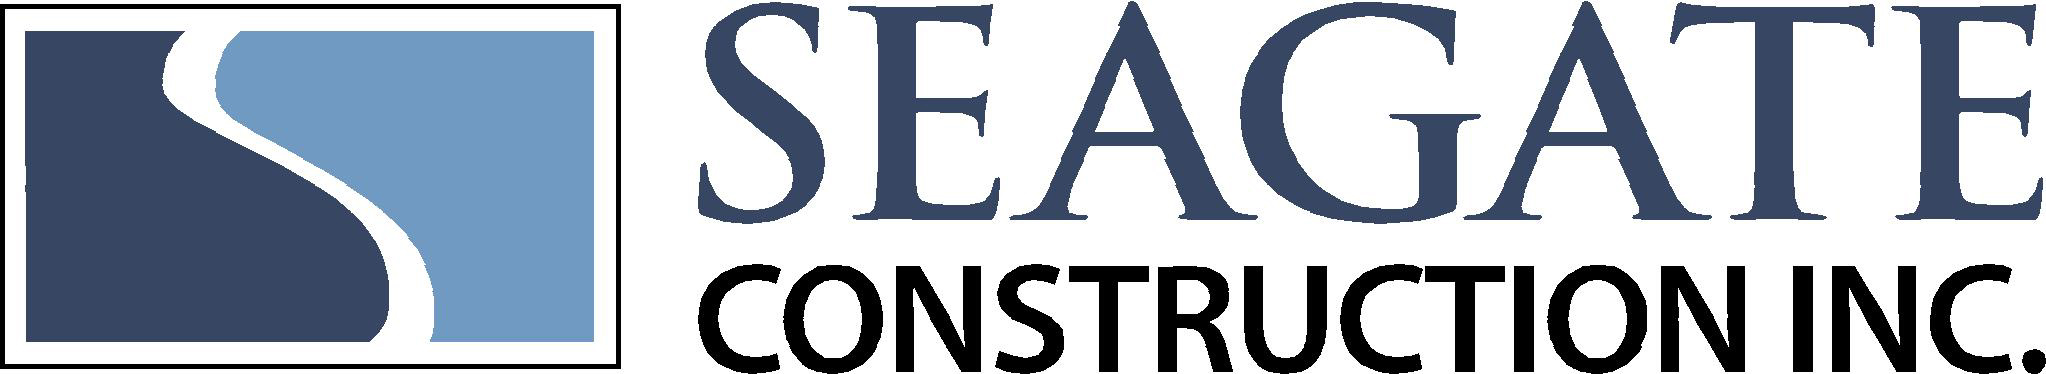 Seagate Construction Inc.